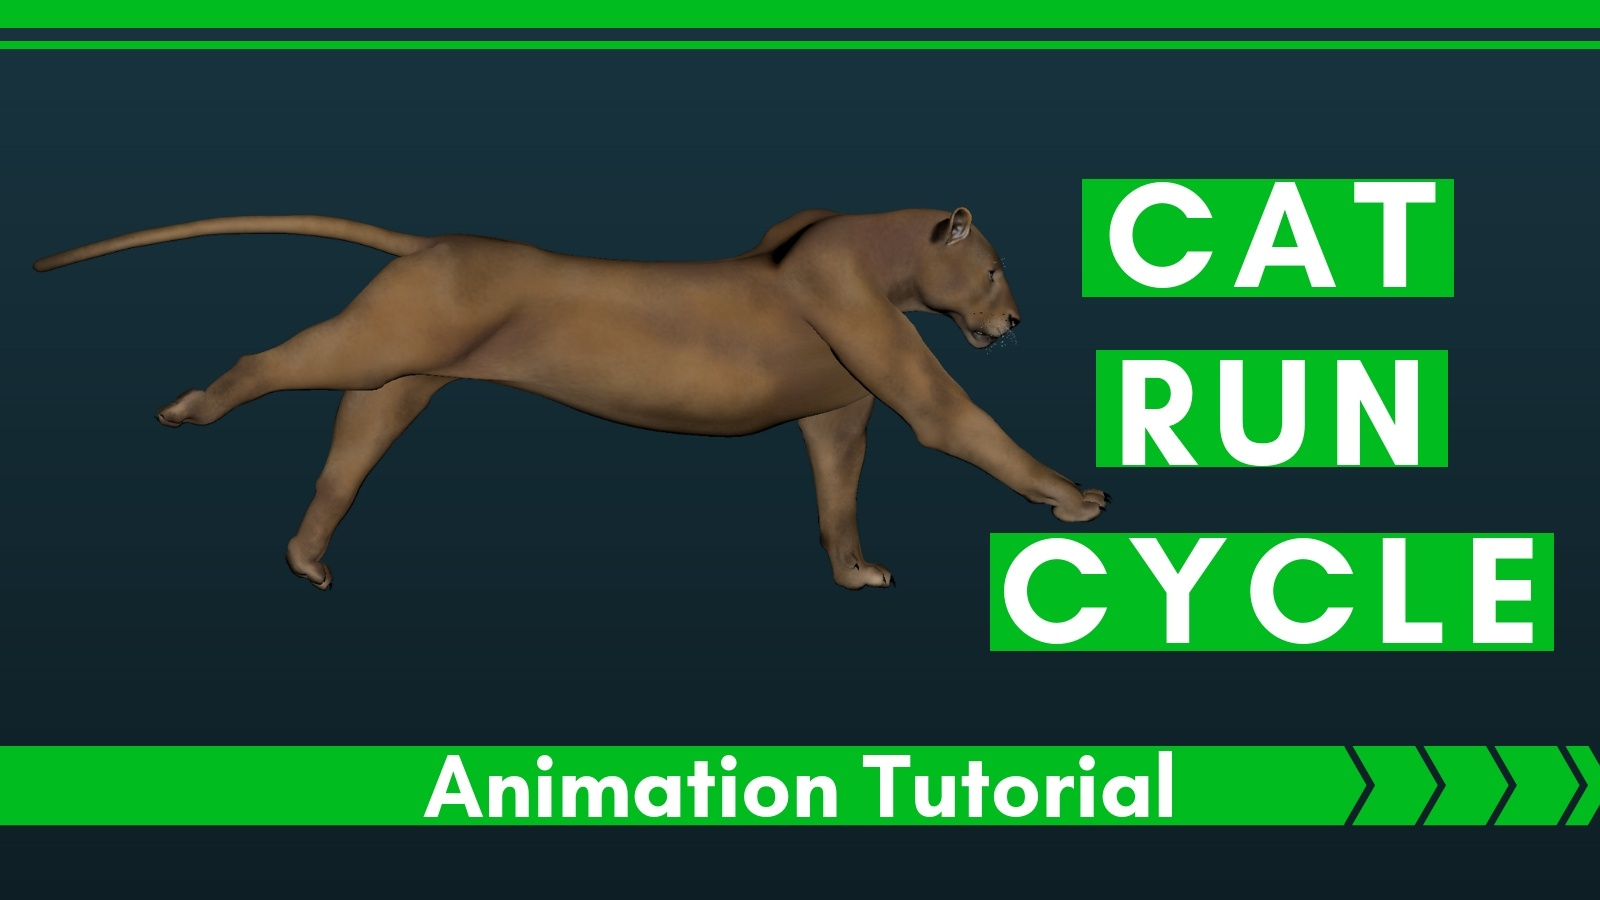 Cat-Run-Cycle-Animation-Tutorial